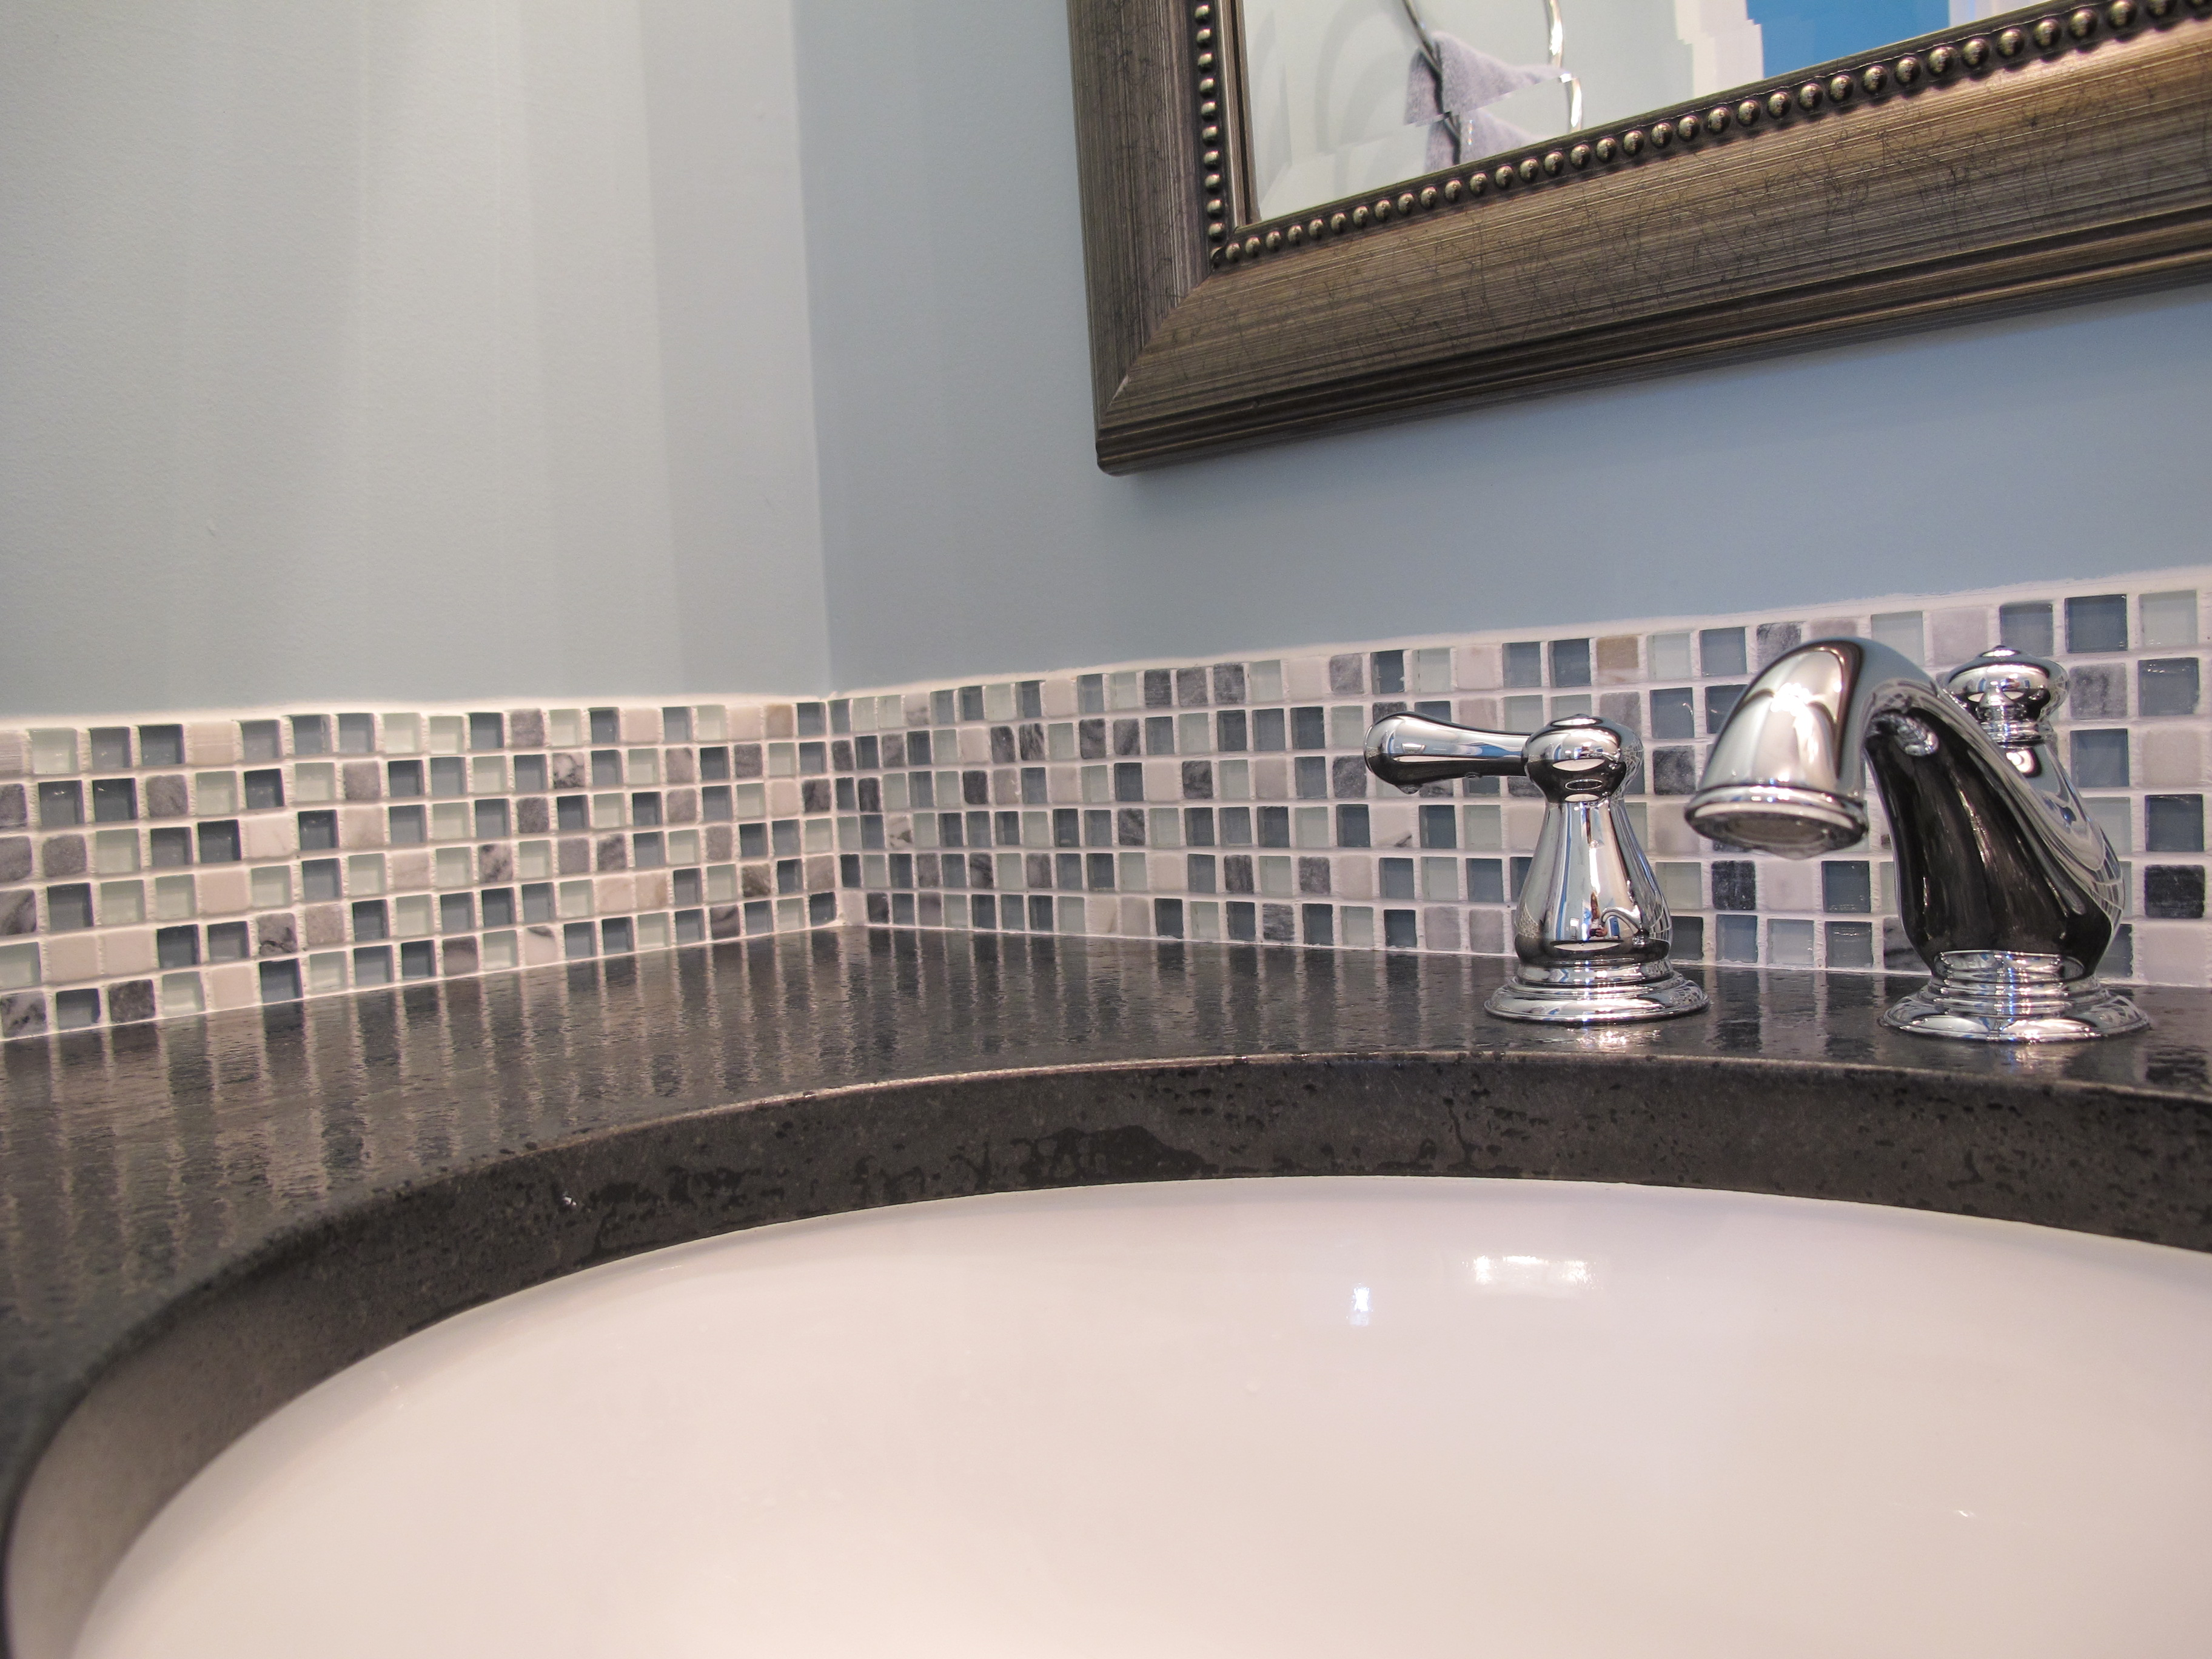 Finding A Discount Tile Backsplash Online Belk Tile